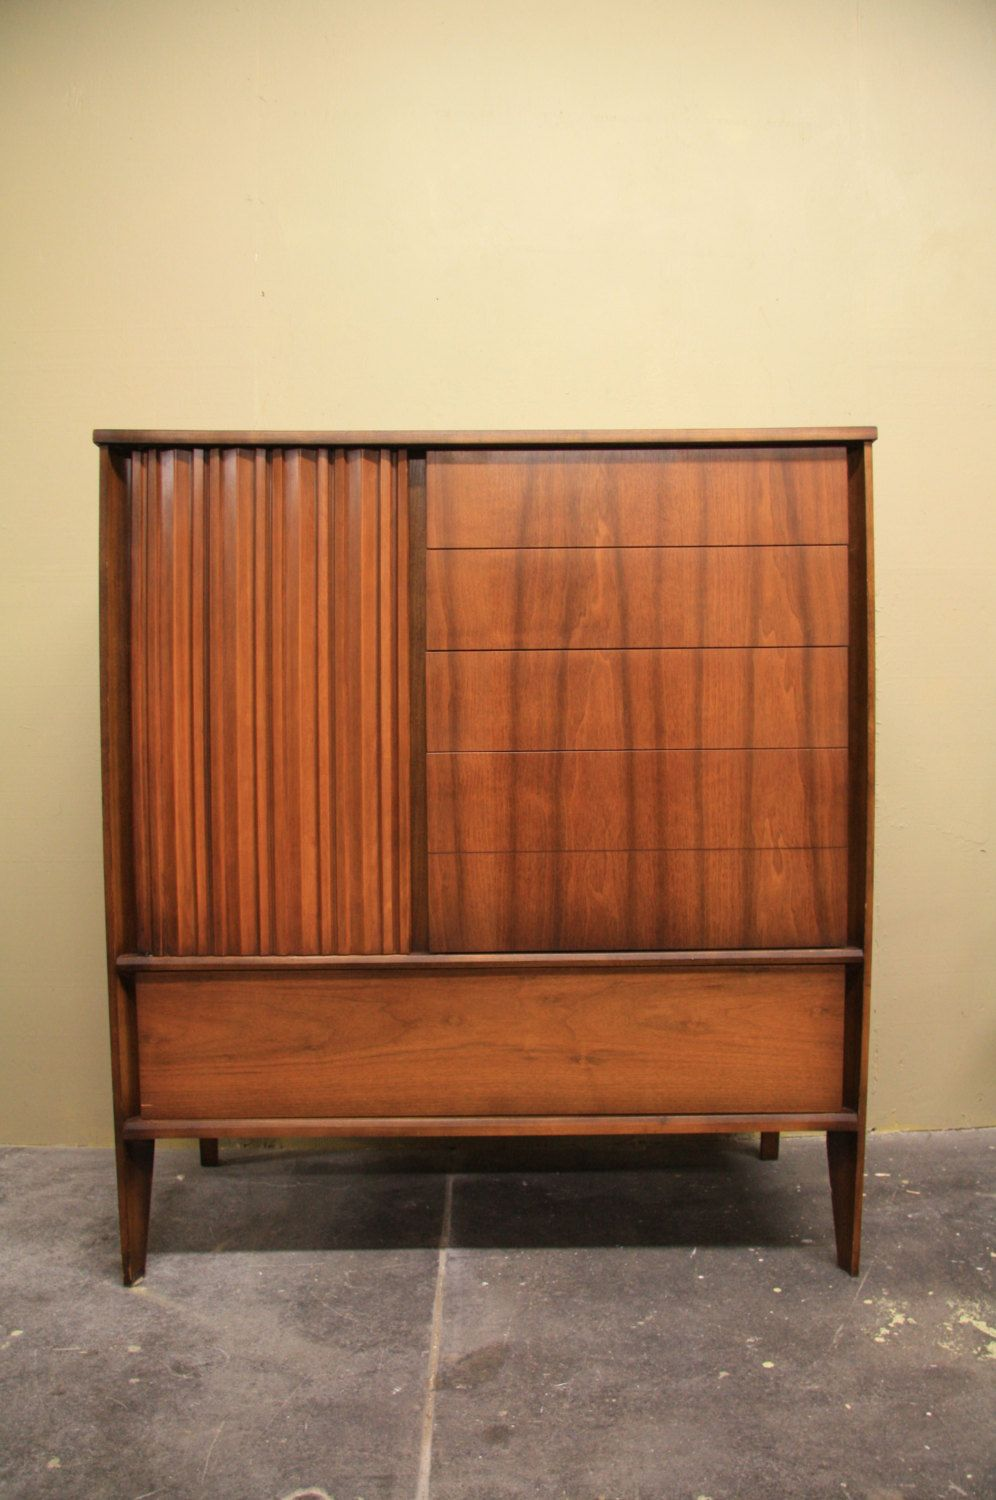 High Quality Mid Century Modern American Armoire Chest By Unagusta For Stada Series By  WrightFindsinMCM On Etsy